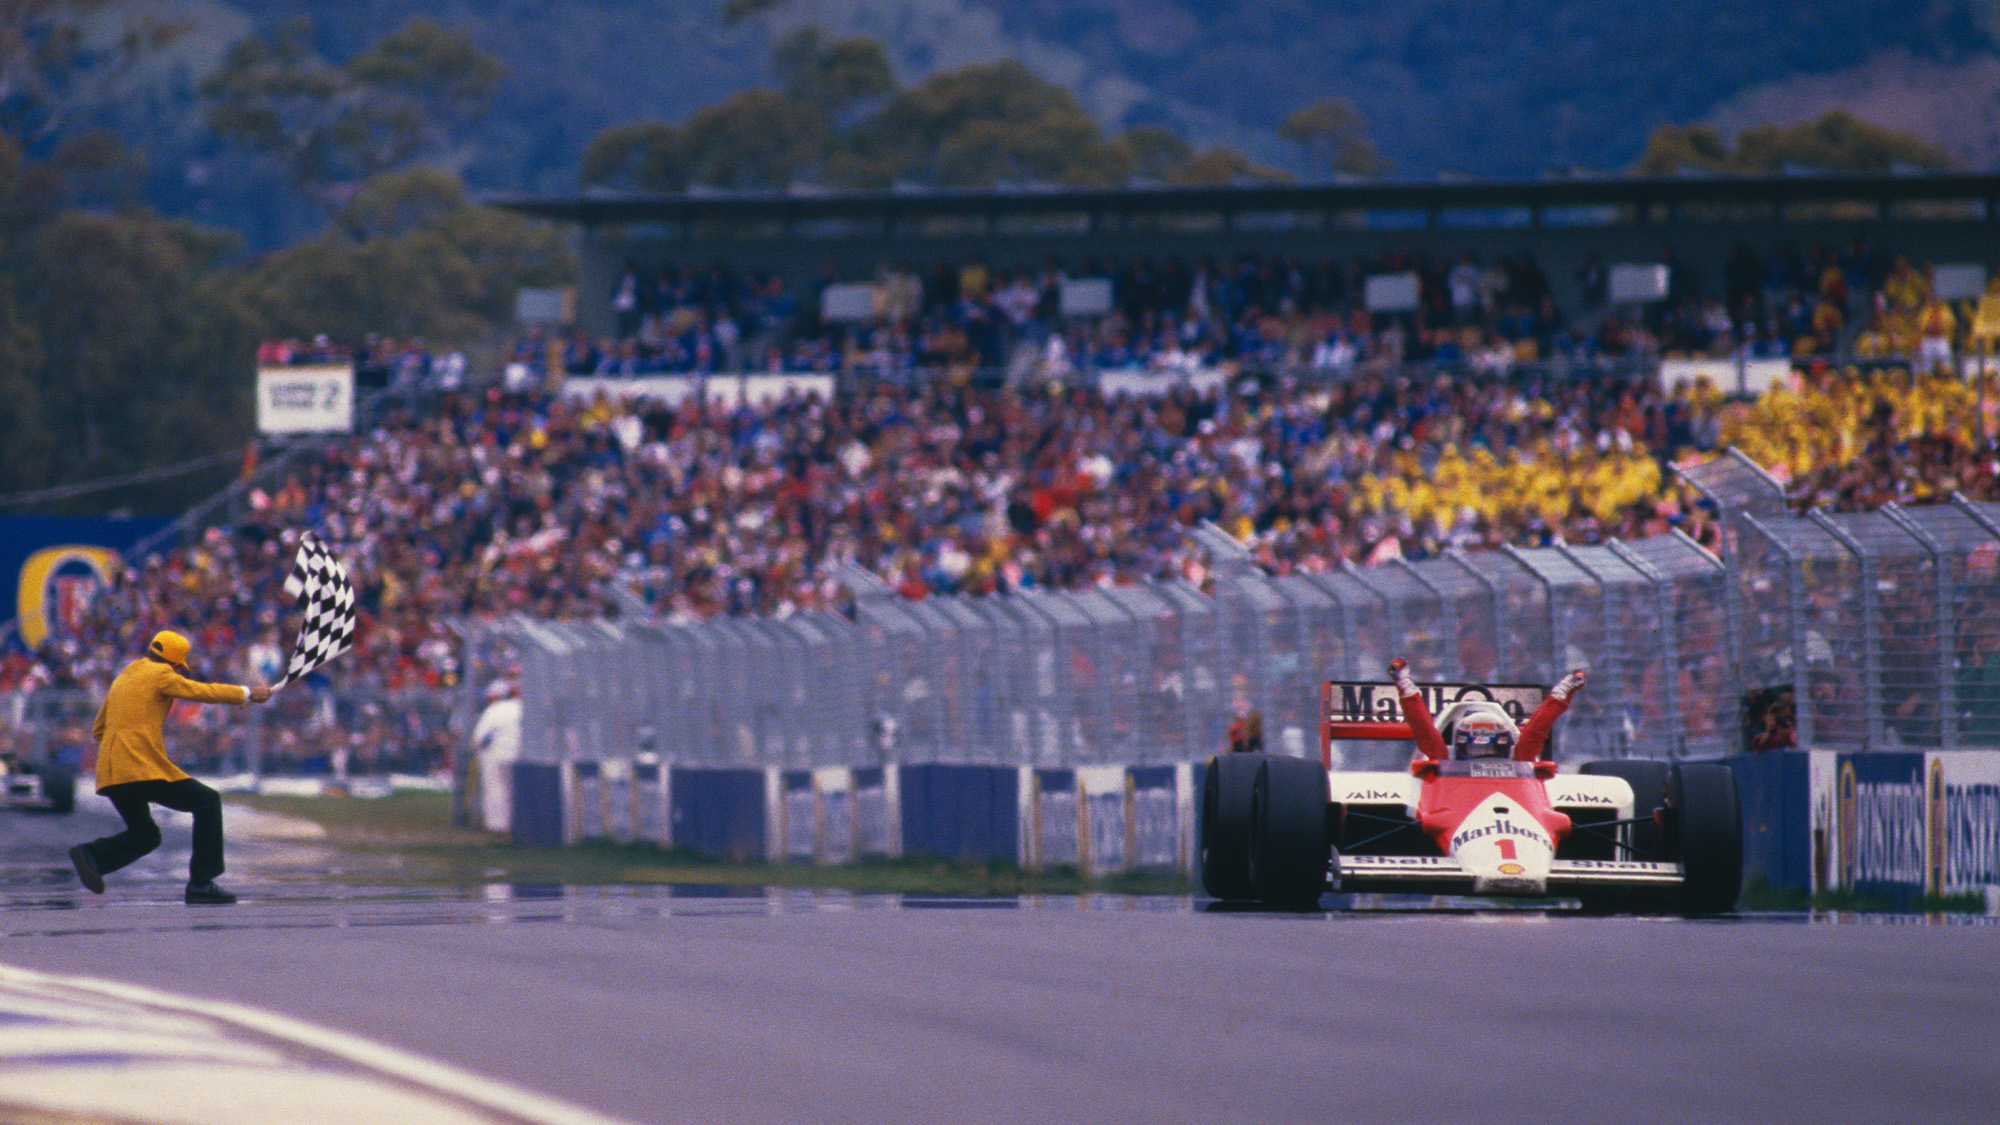 Alain Prost raises his arms in the air as he crosses the finish line at Adelaide to win the Australian Grand Prix and 1986 world championship